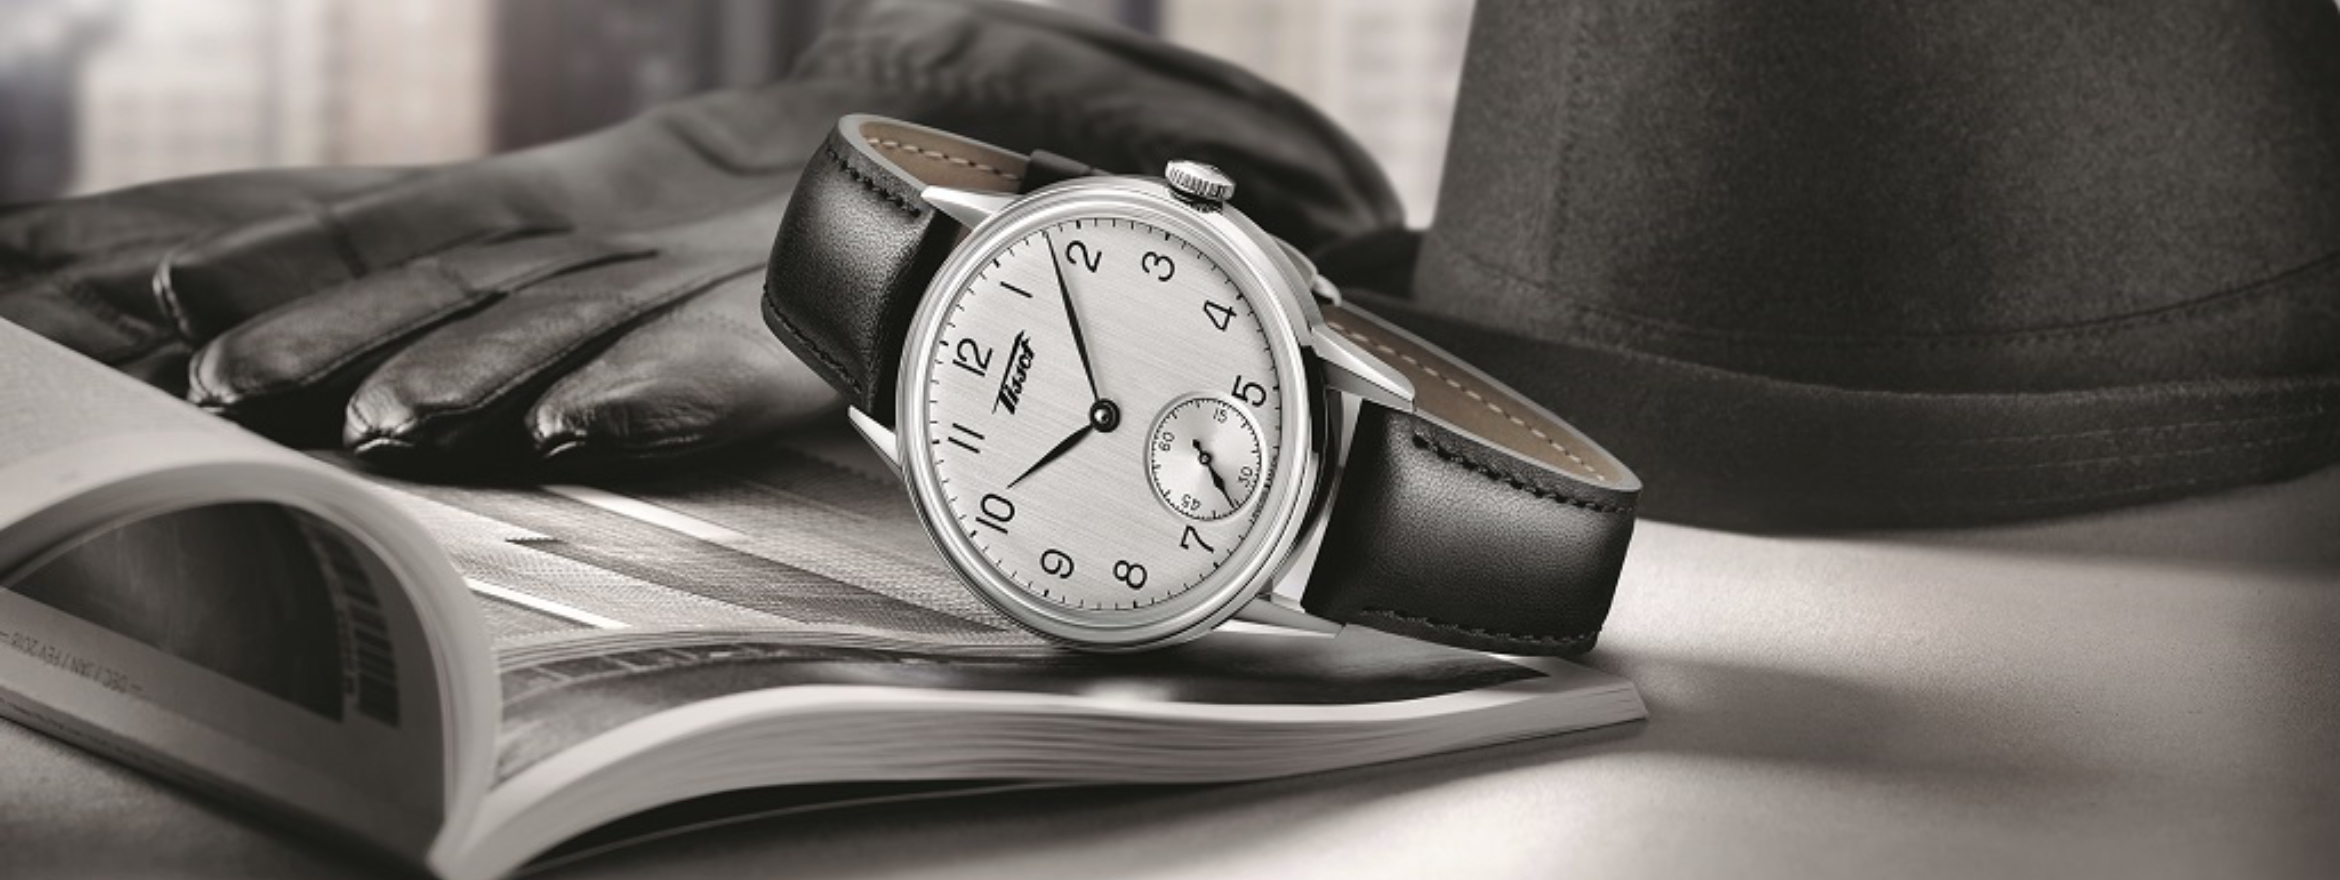 Taking a Look at the Tissot Heritage Petite Seconde